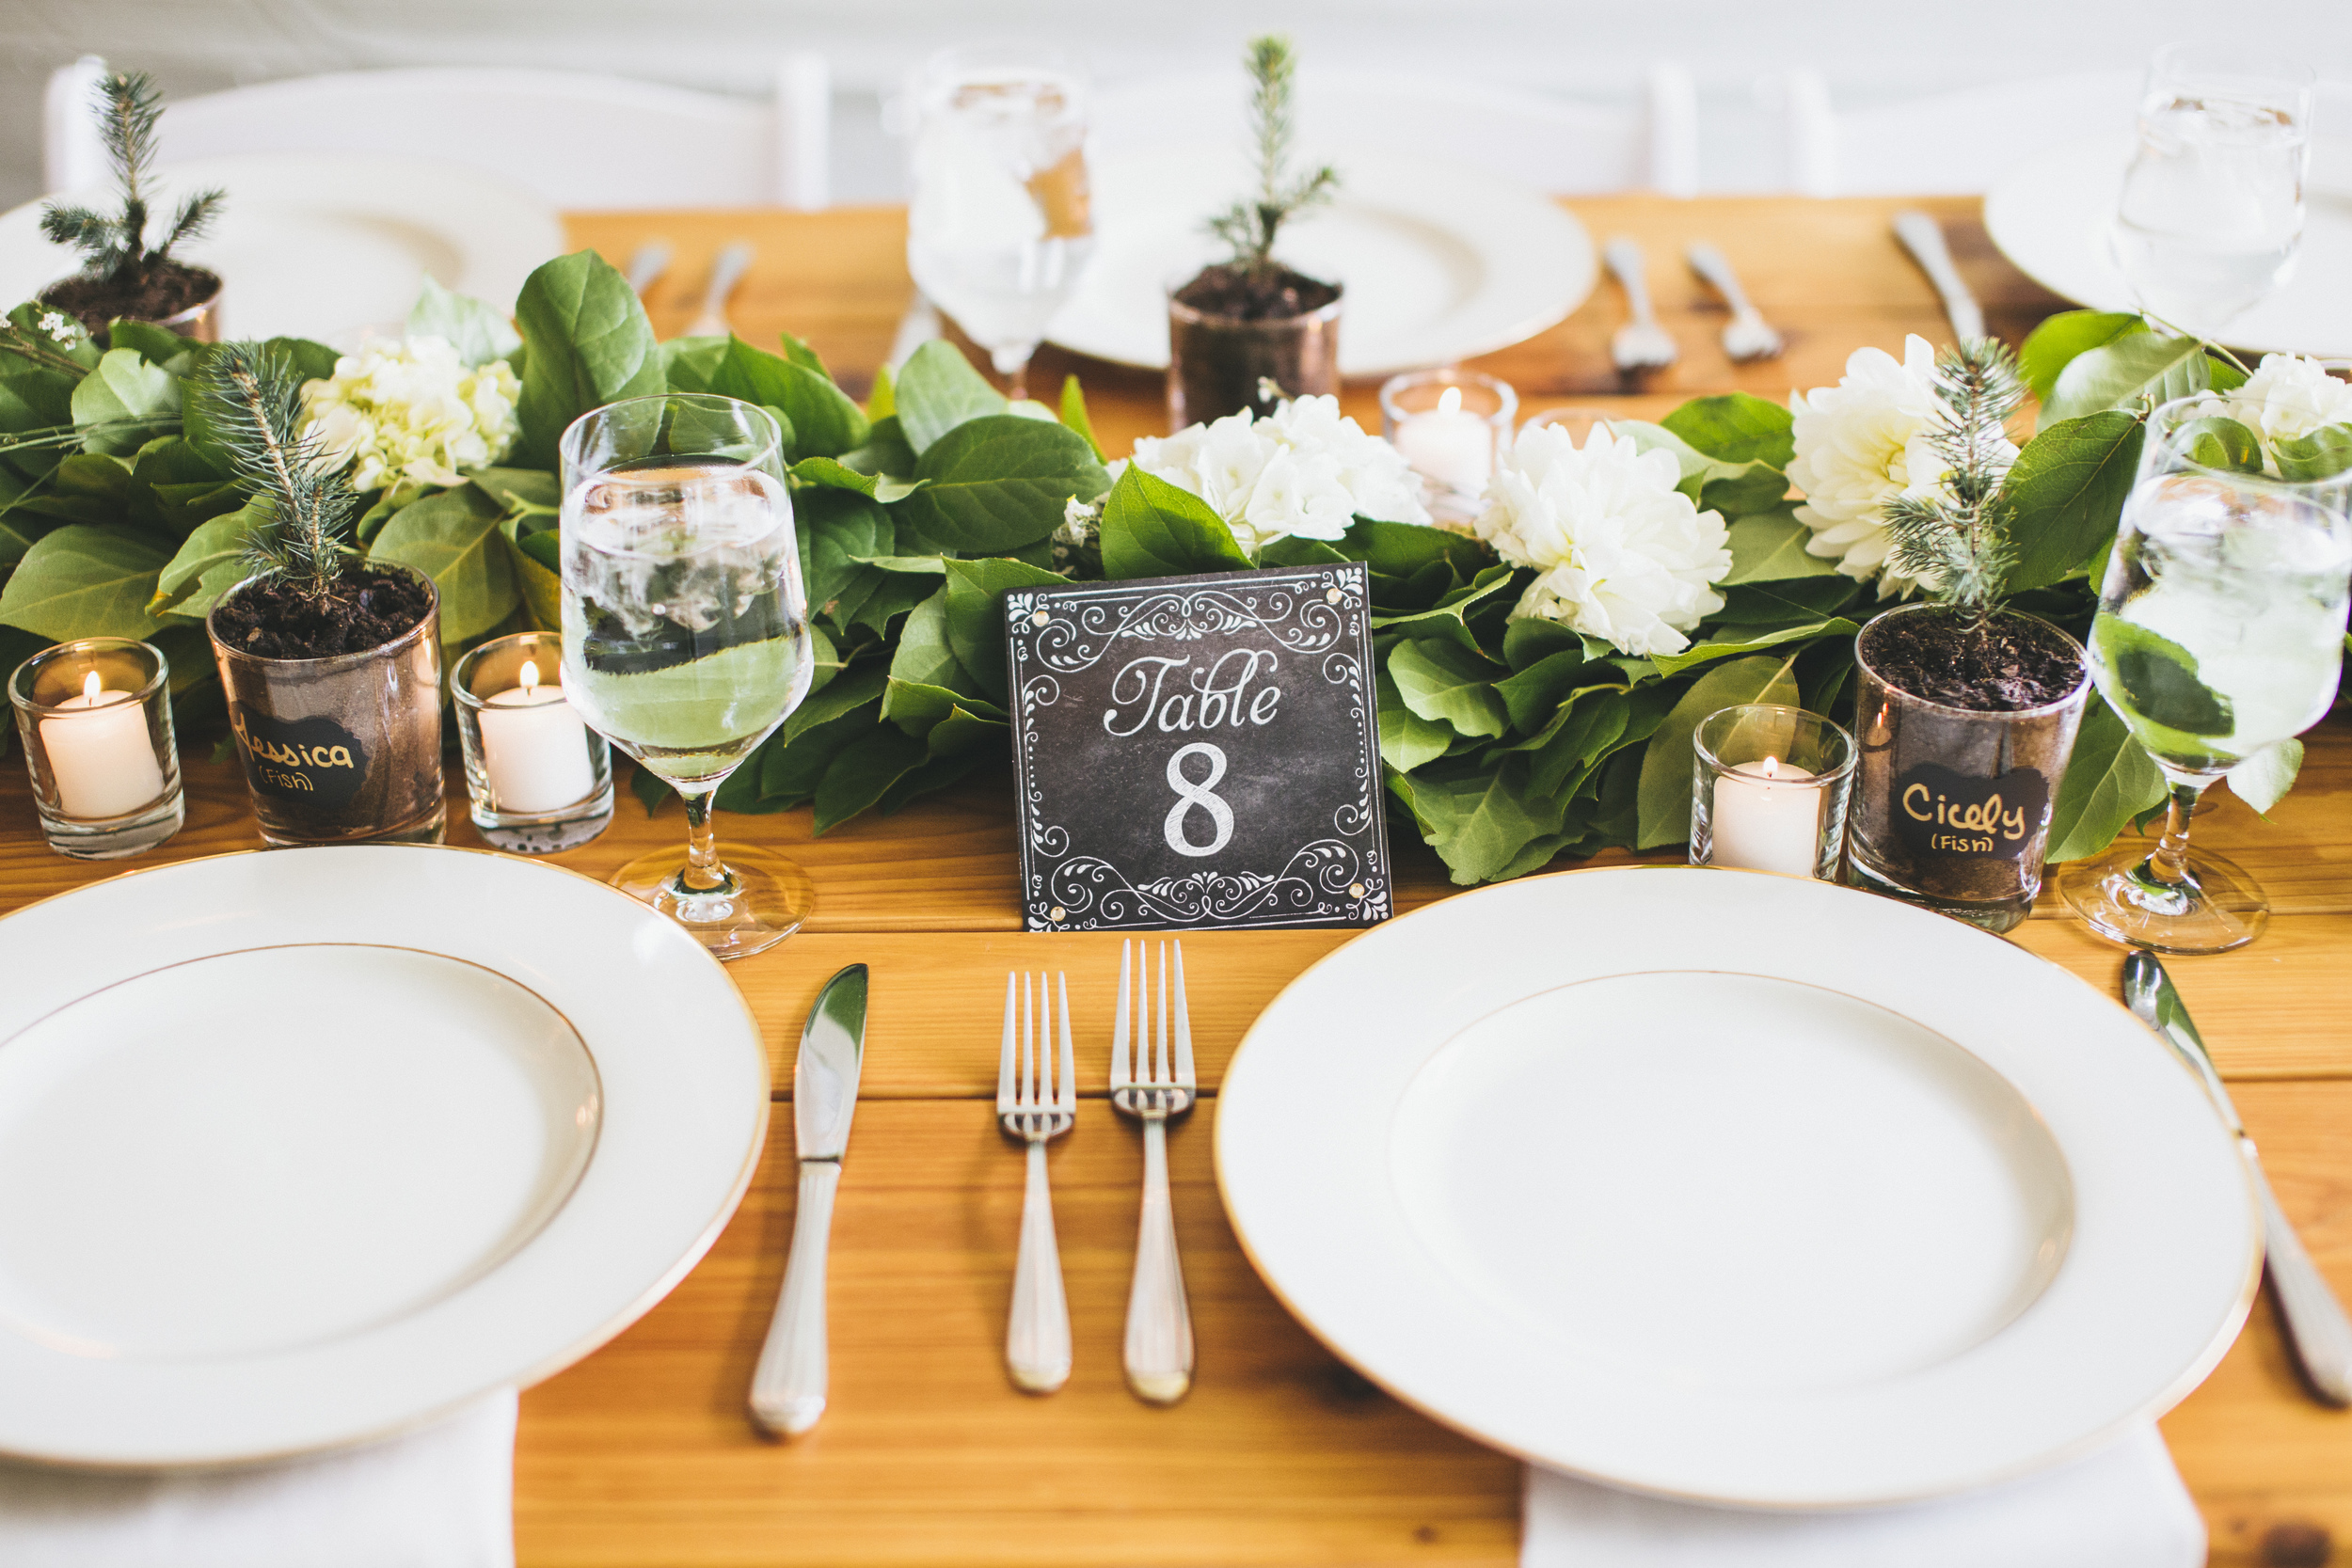 Garland Table Runner in Teal and Green DeLille Cellars Wedding